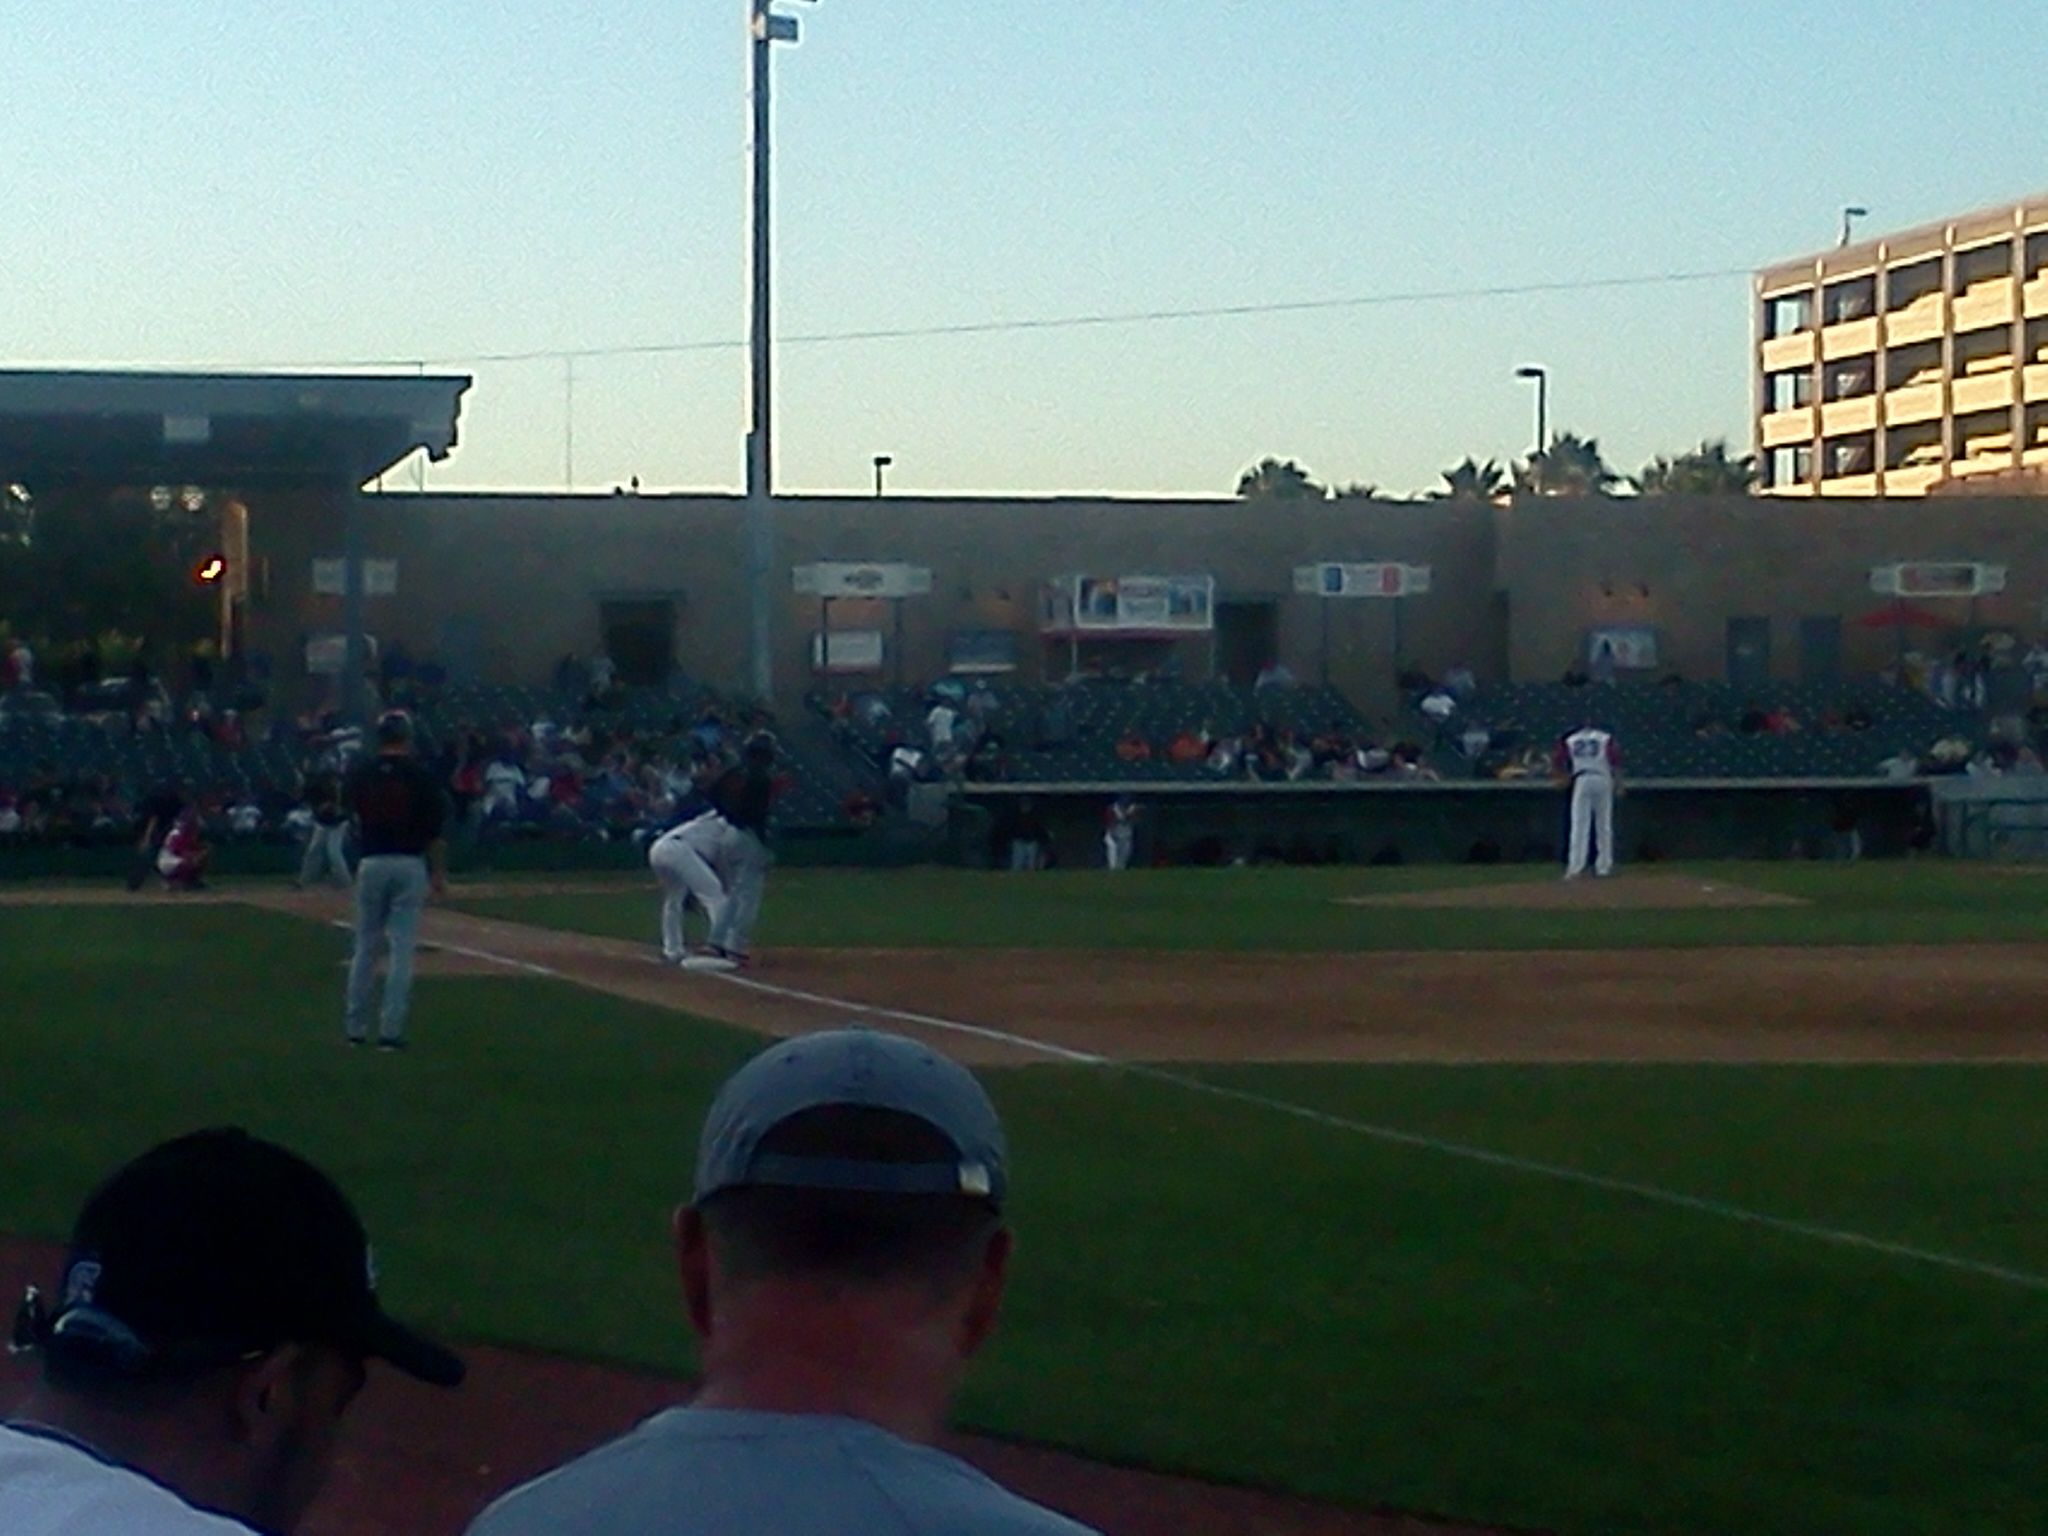 Section I sit in every time I can because of the Heckler!  #baseball #StocktonPorts